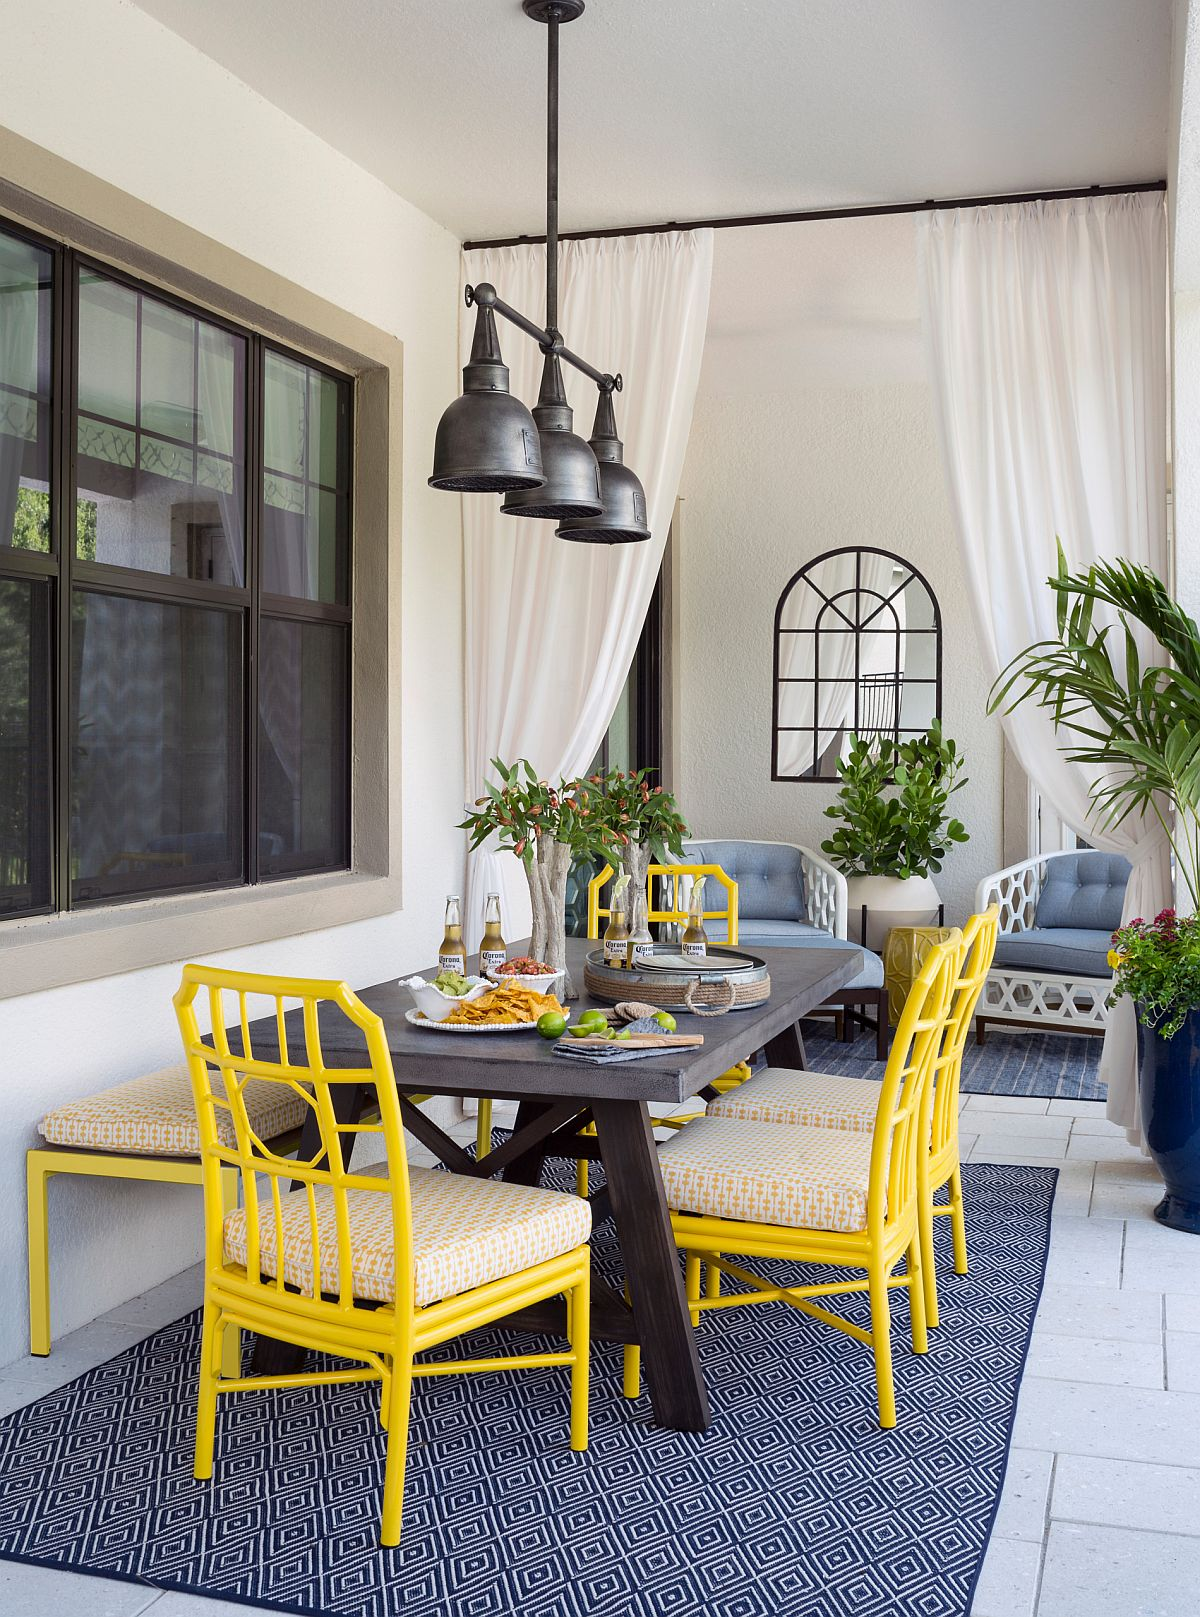 Beautiful-chairs-in-yellow-and-rug-in-blue-bring-color-to-this-modern-industrial-porch-dining-space-56909